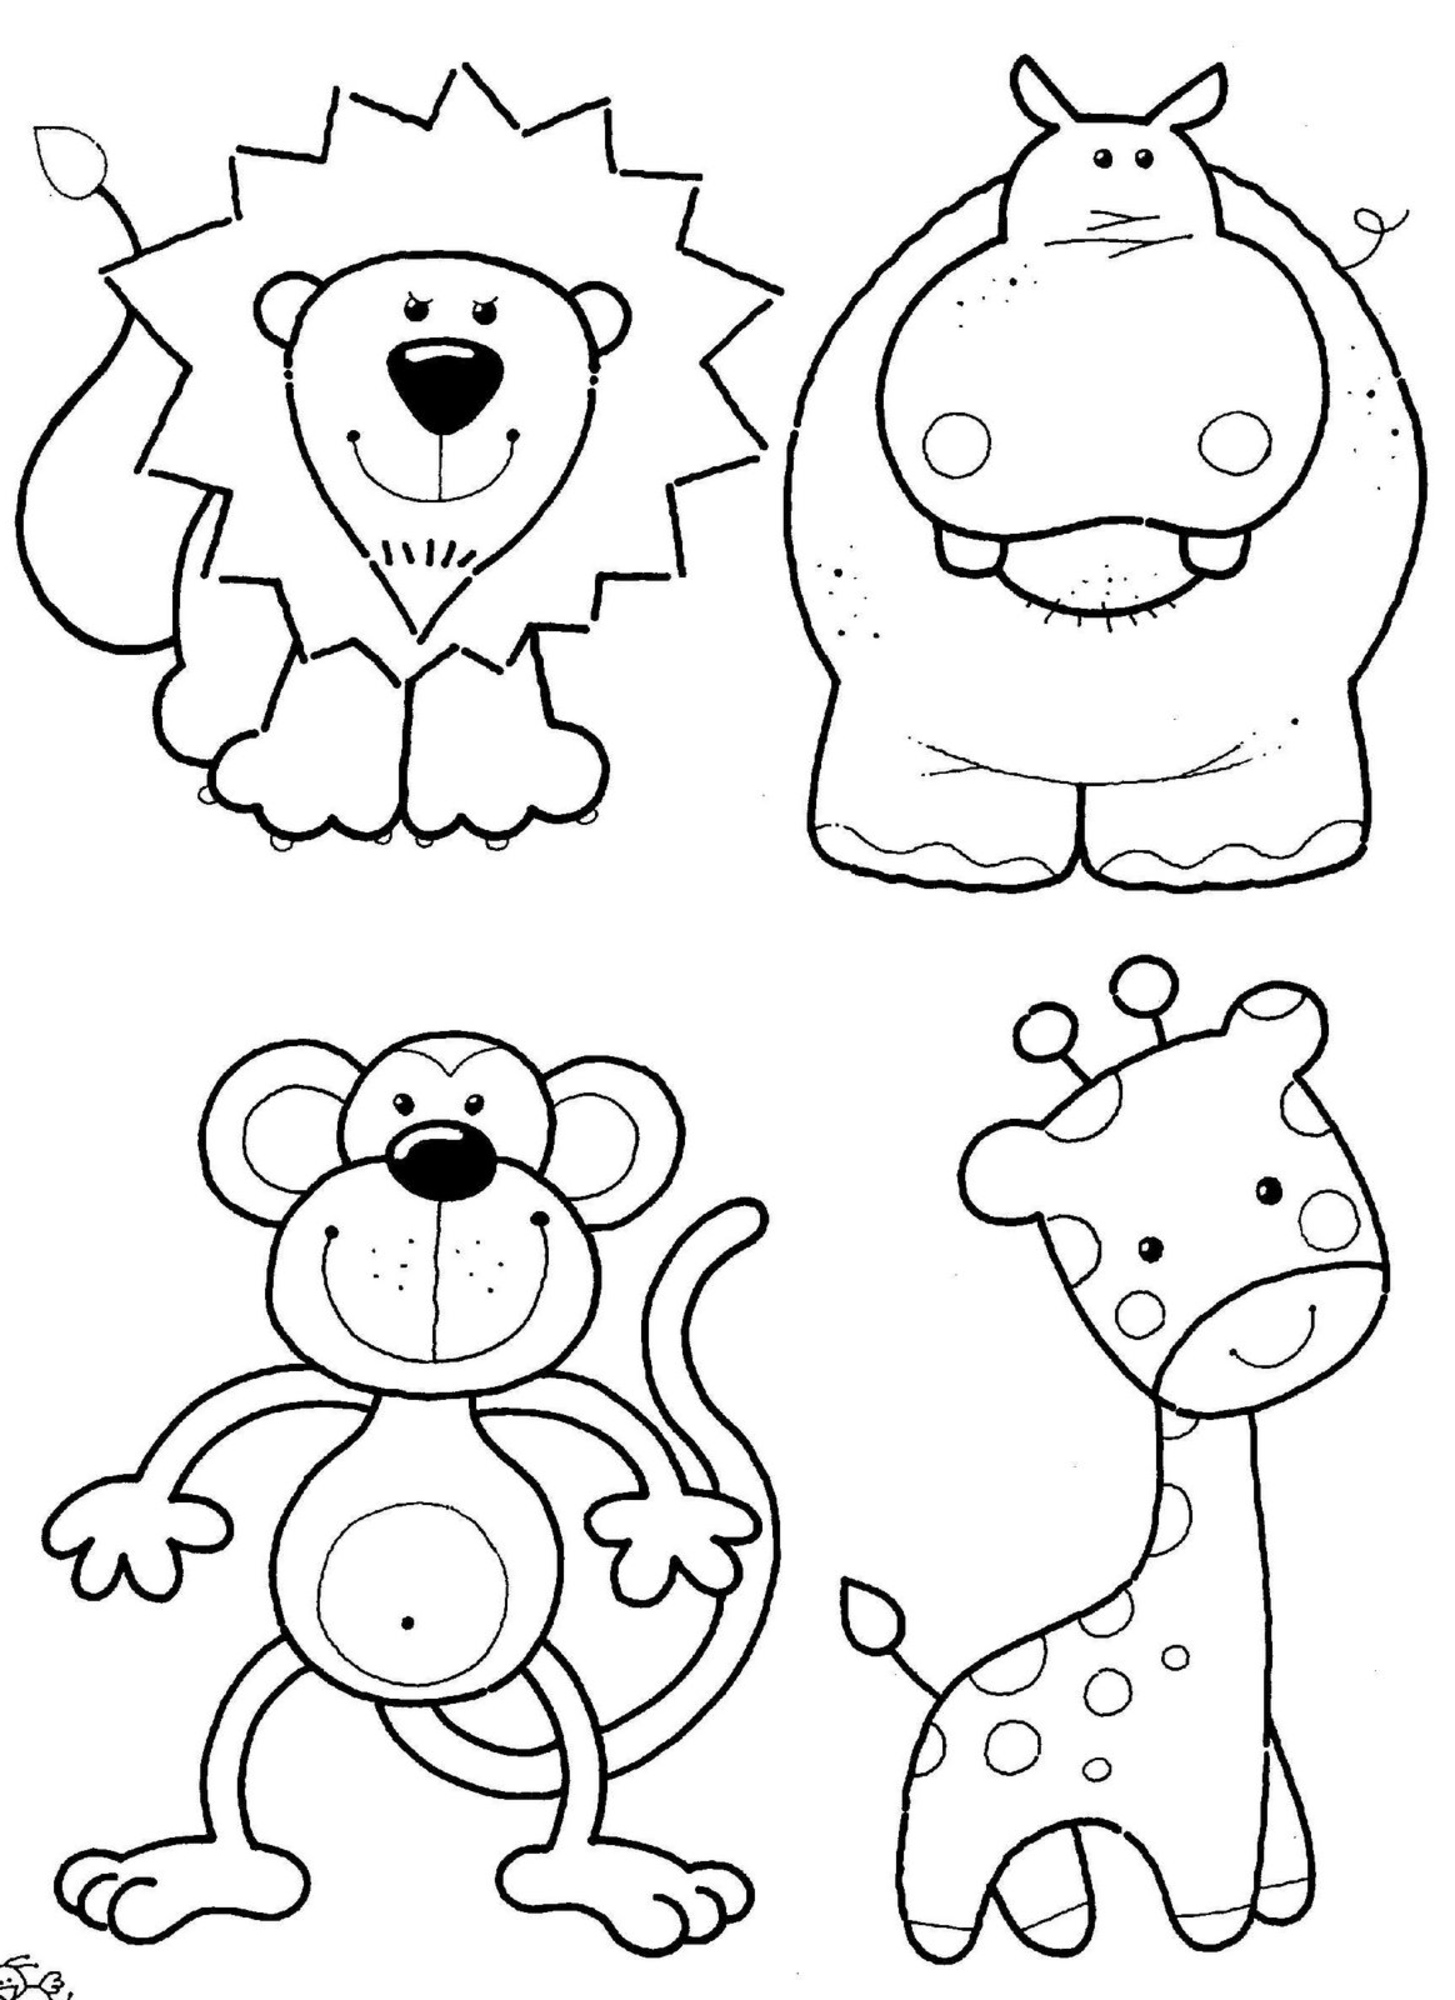 small printable pictures of animals cute dog coloring pages to download and print for free small pictures animals of printable